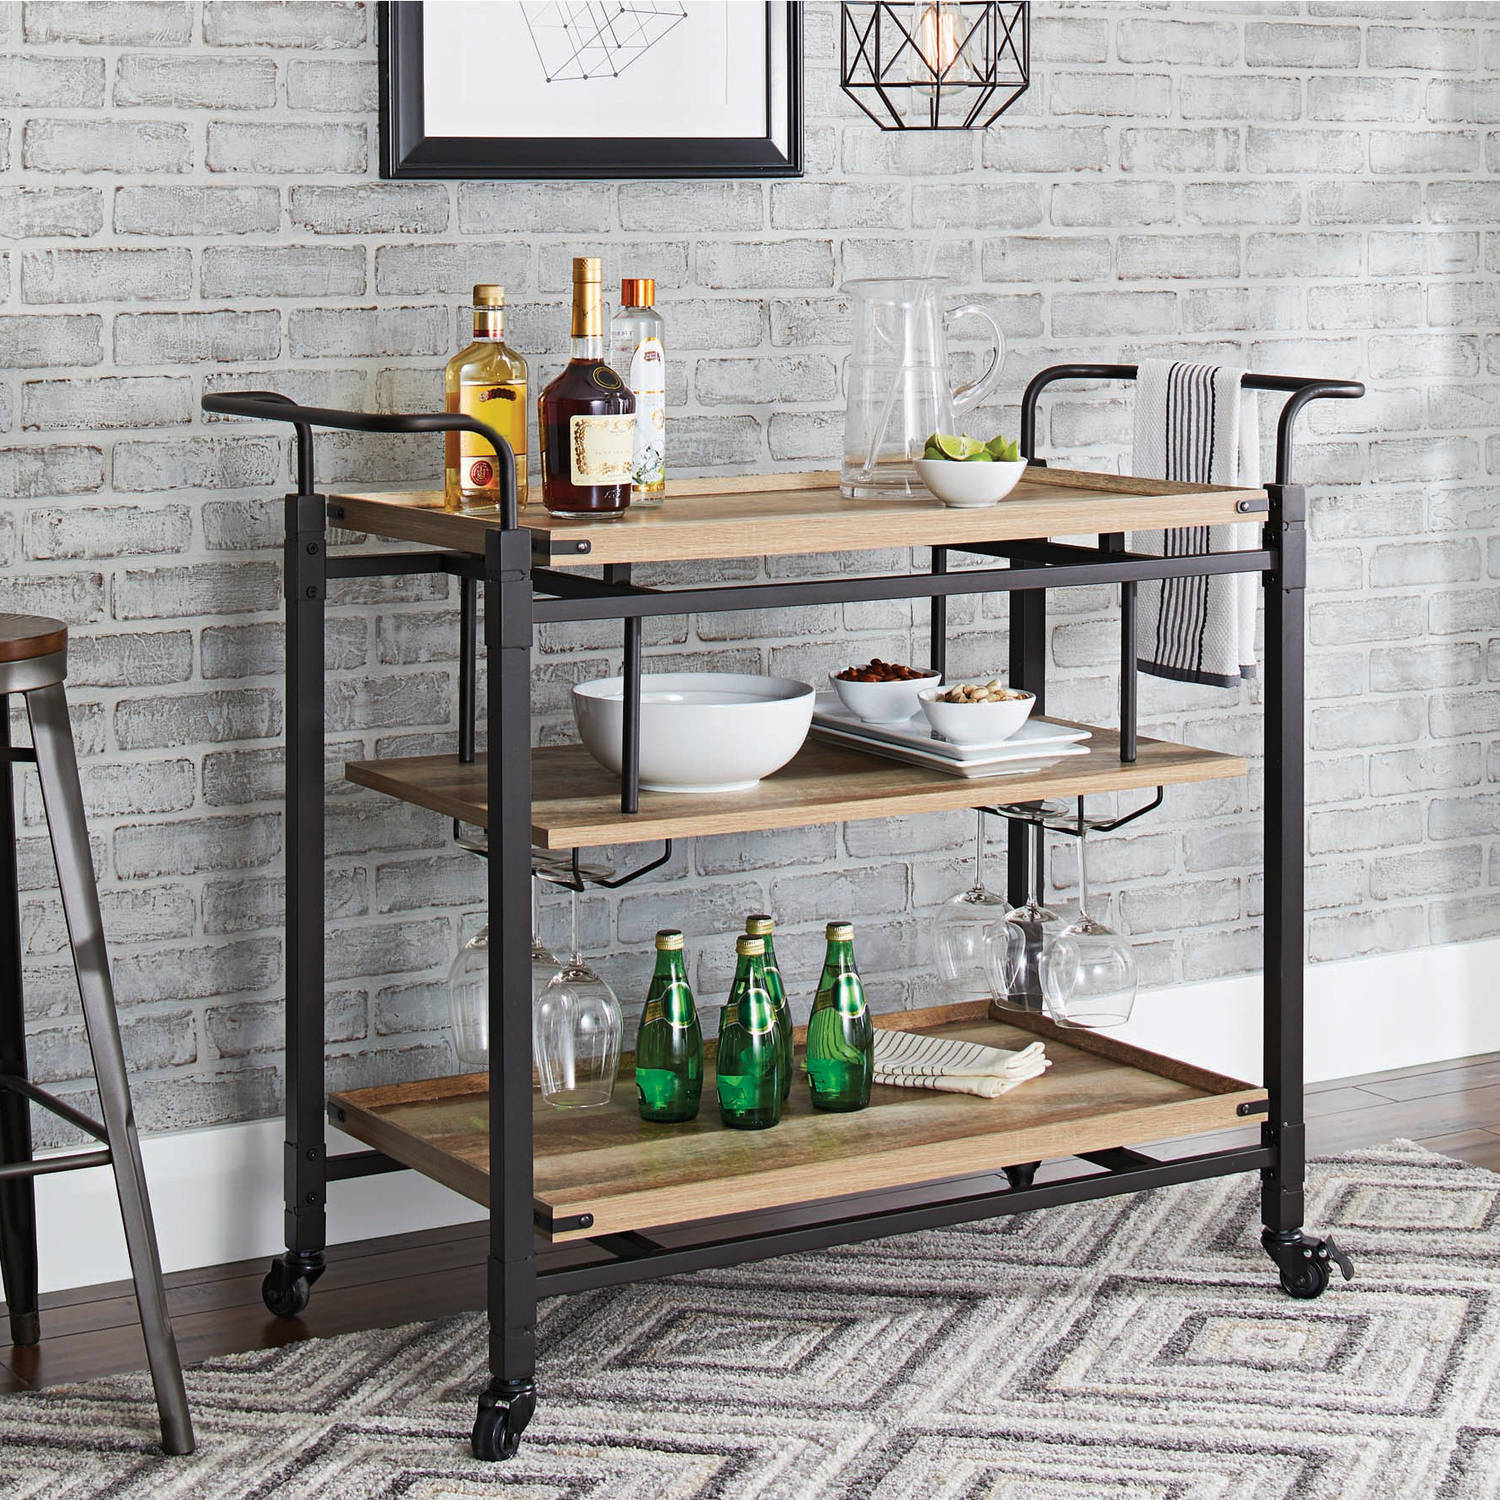 Better Homes and Gardens Crossmill Bar Cart, Weathered Finish